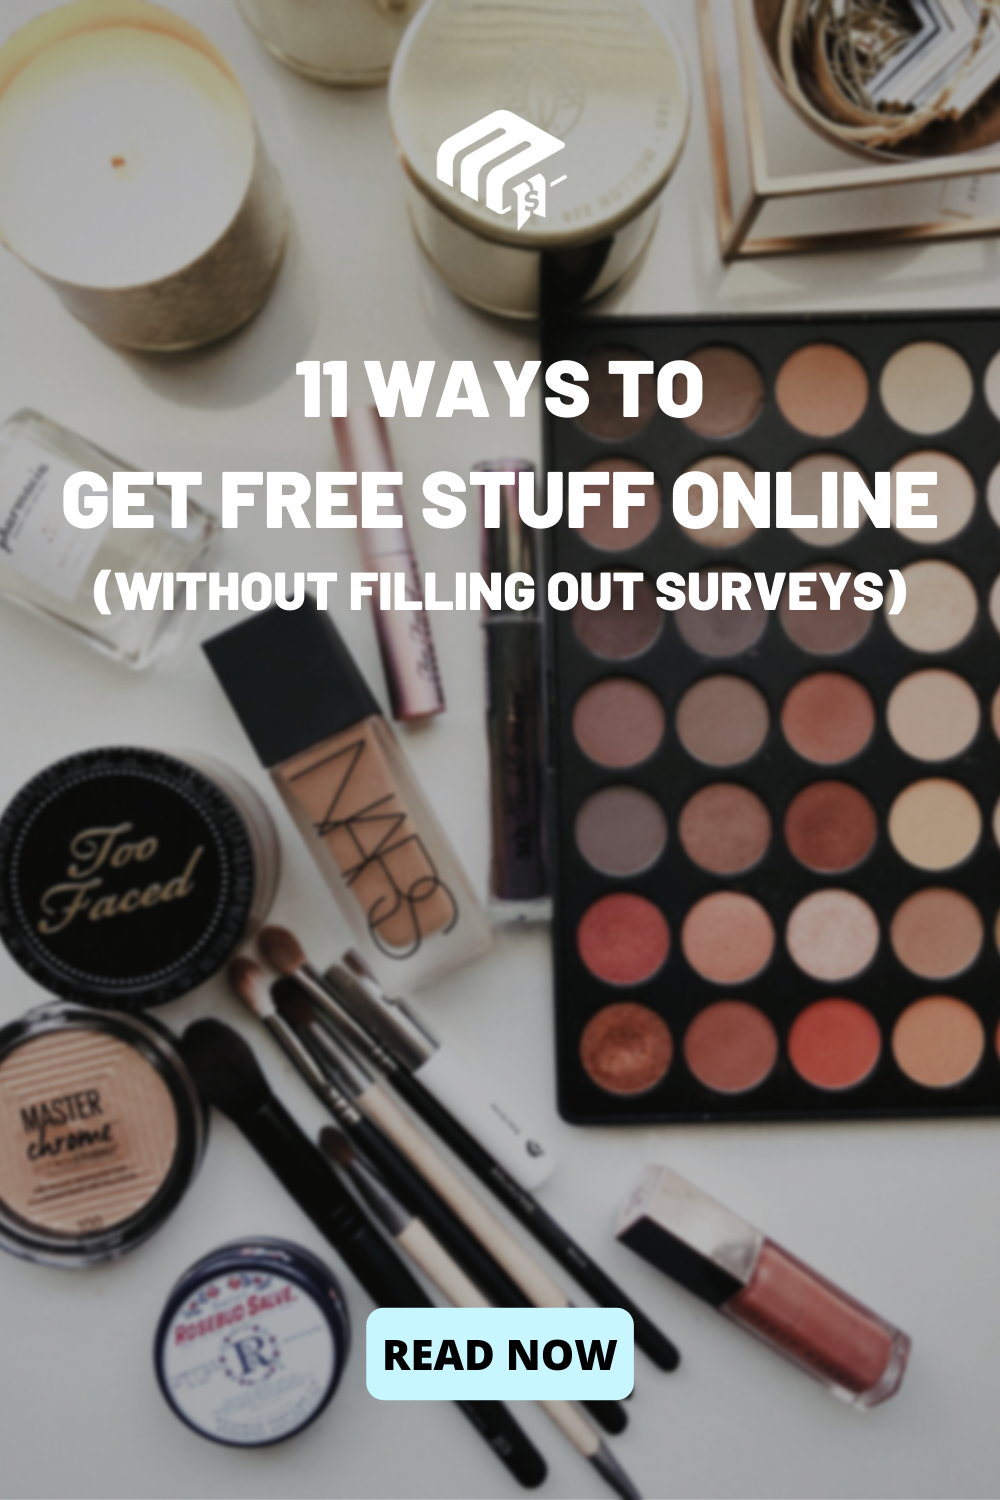 Check Out These Ways To Get Free Stuff Online Without Taking Surveys In 2020 Get Free Stuff Online Free Stuff By Mail Get Free Stuff